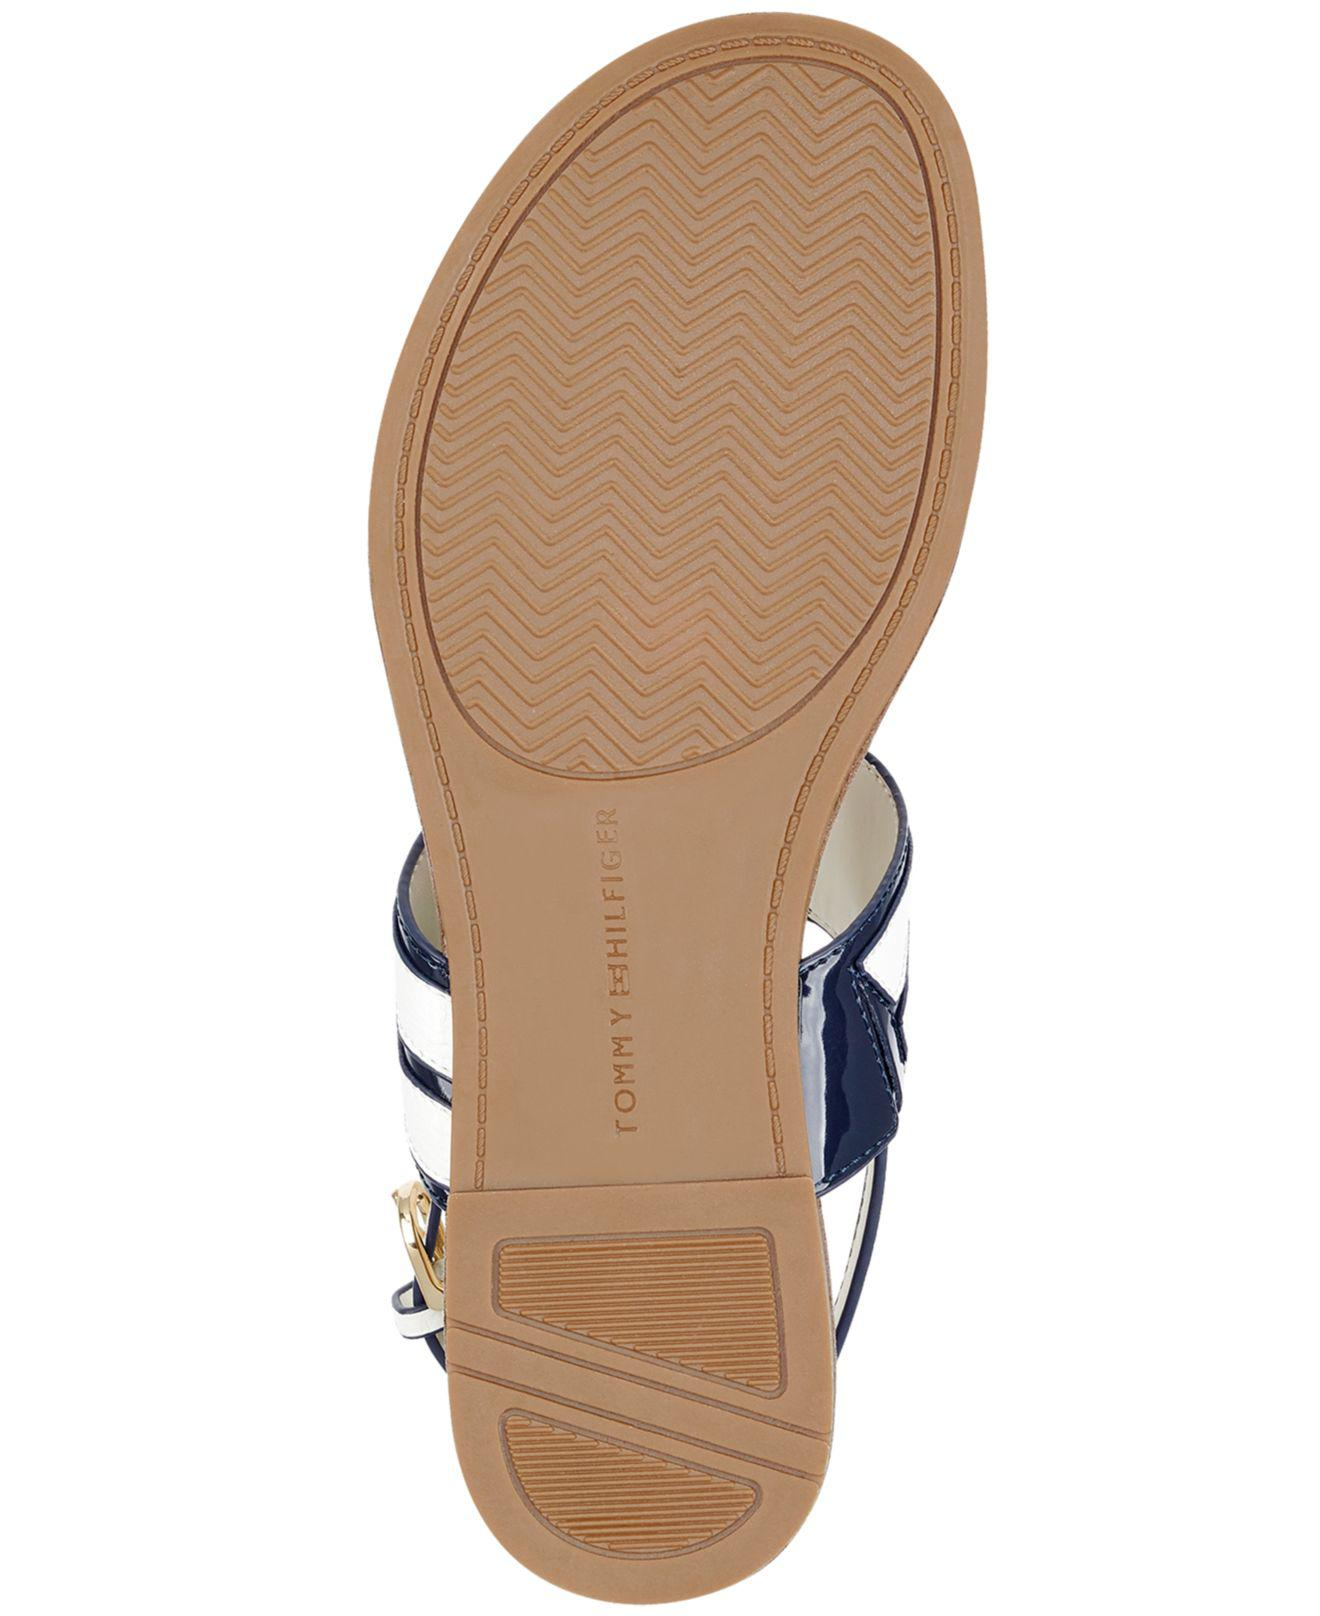 bac0ac179 Gallery. Previously sold at  Macy s · Women s Thong Sandals ...